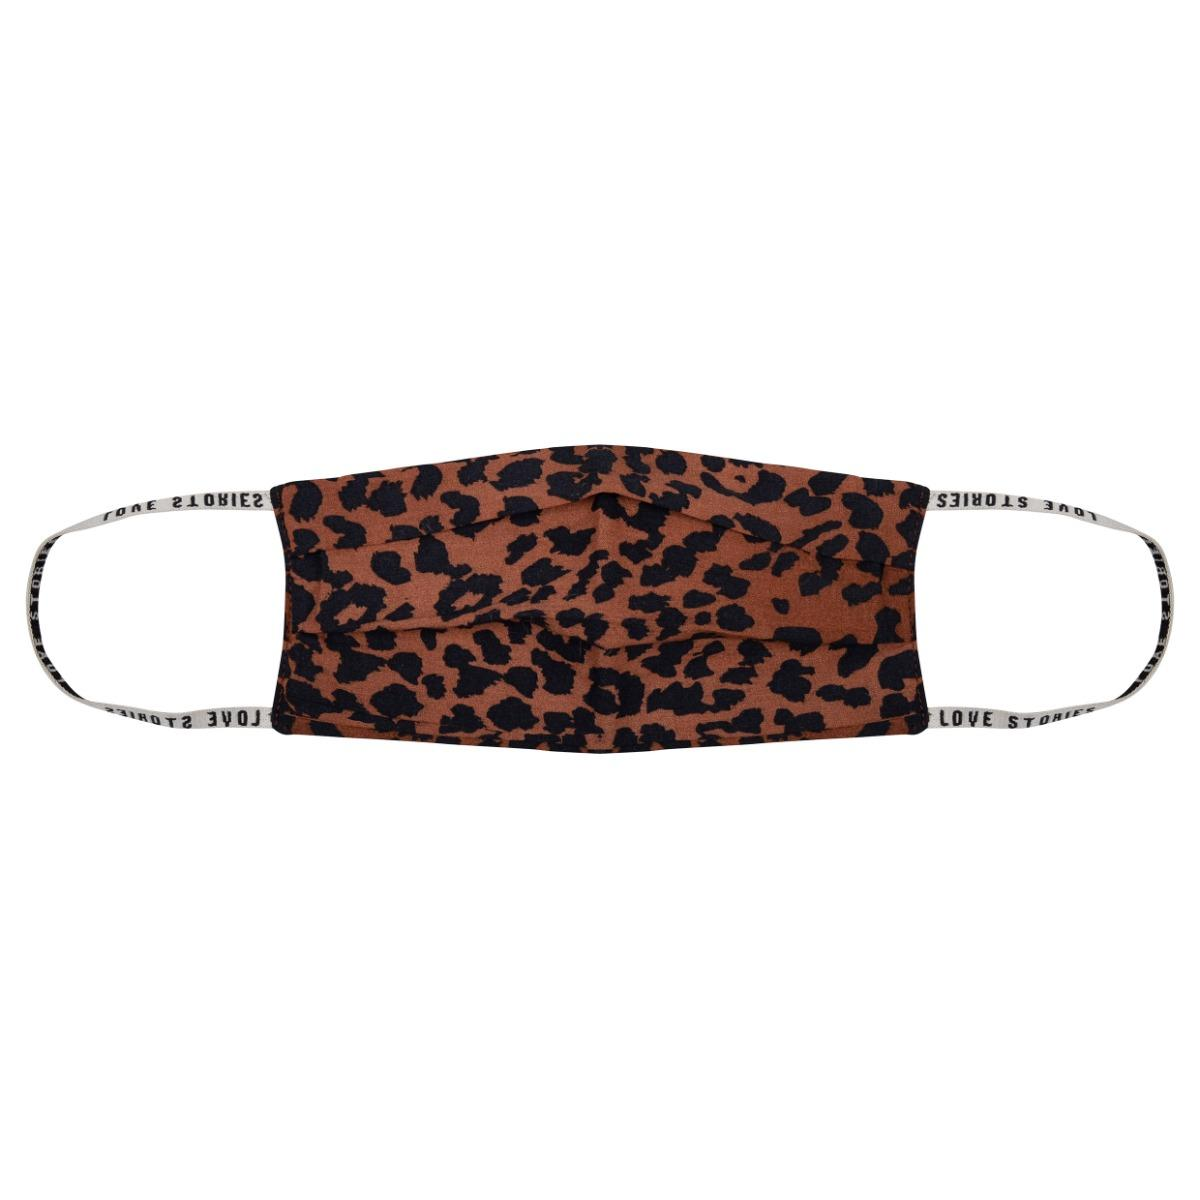 Love stories Leopard Face Mask